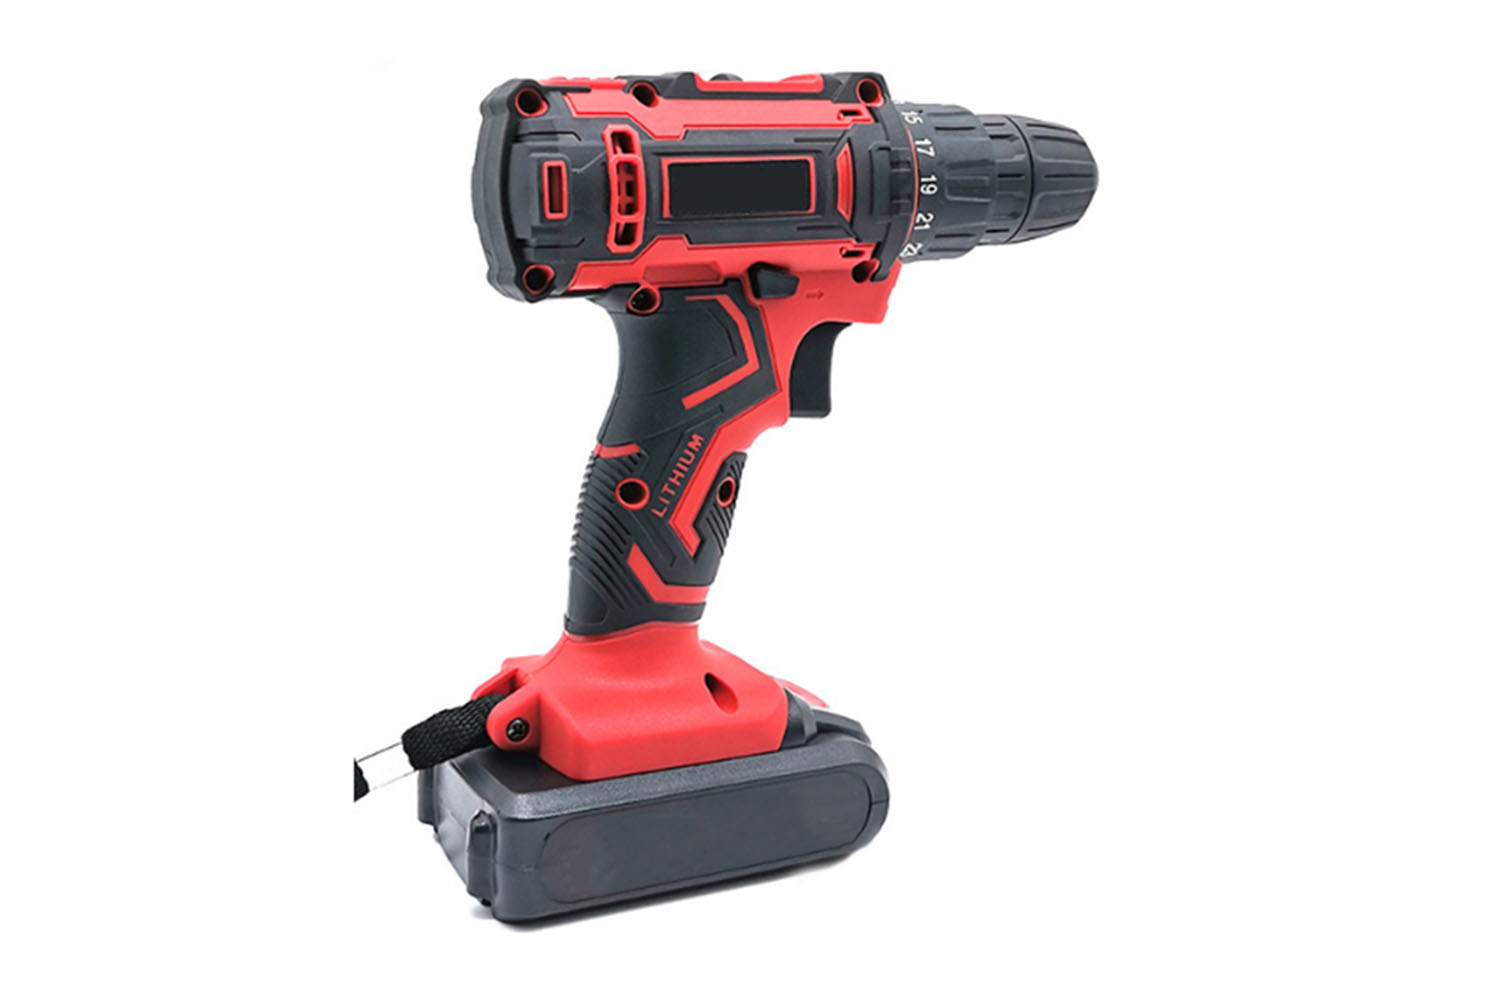 battery for cordless tools